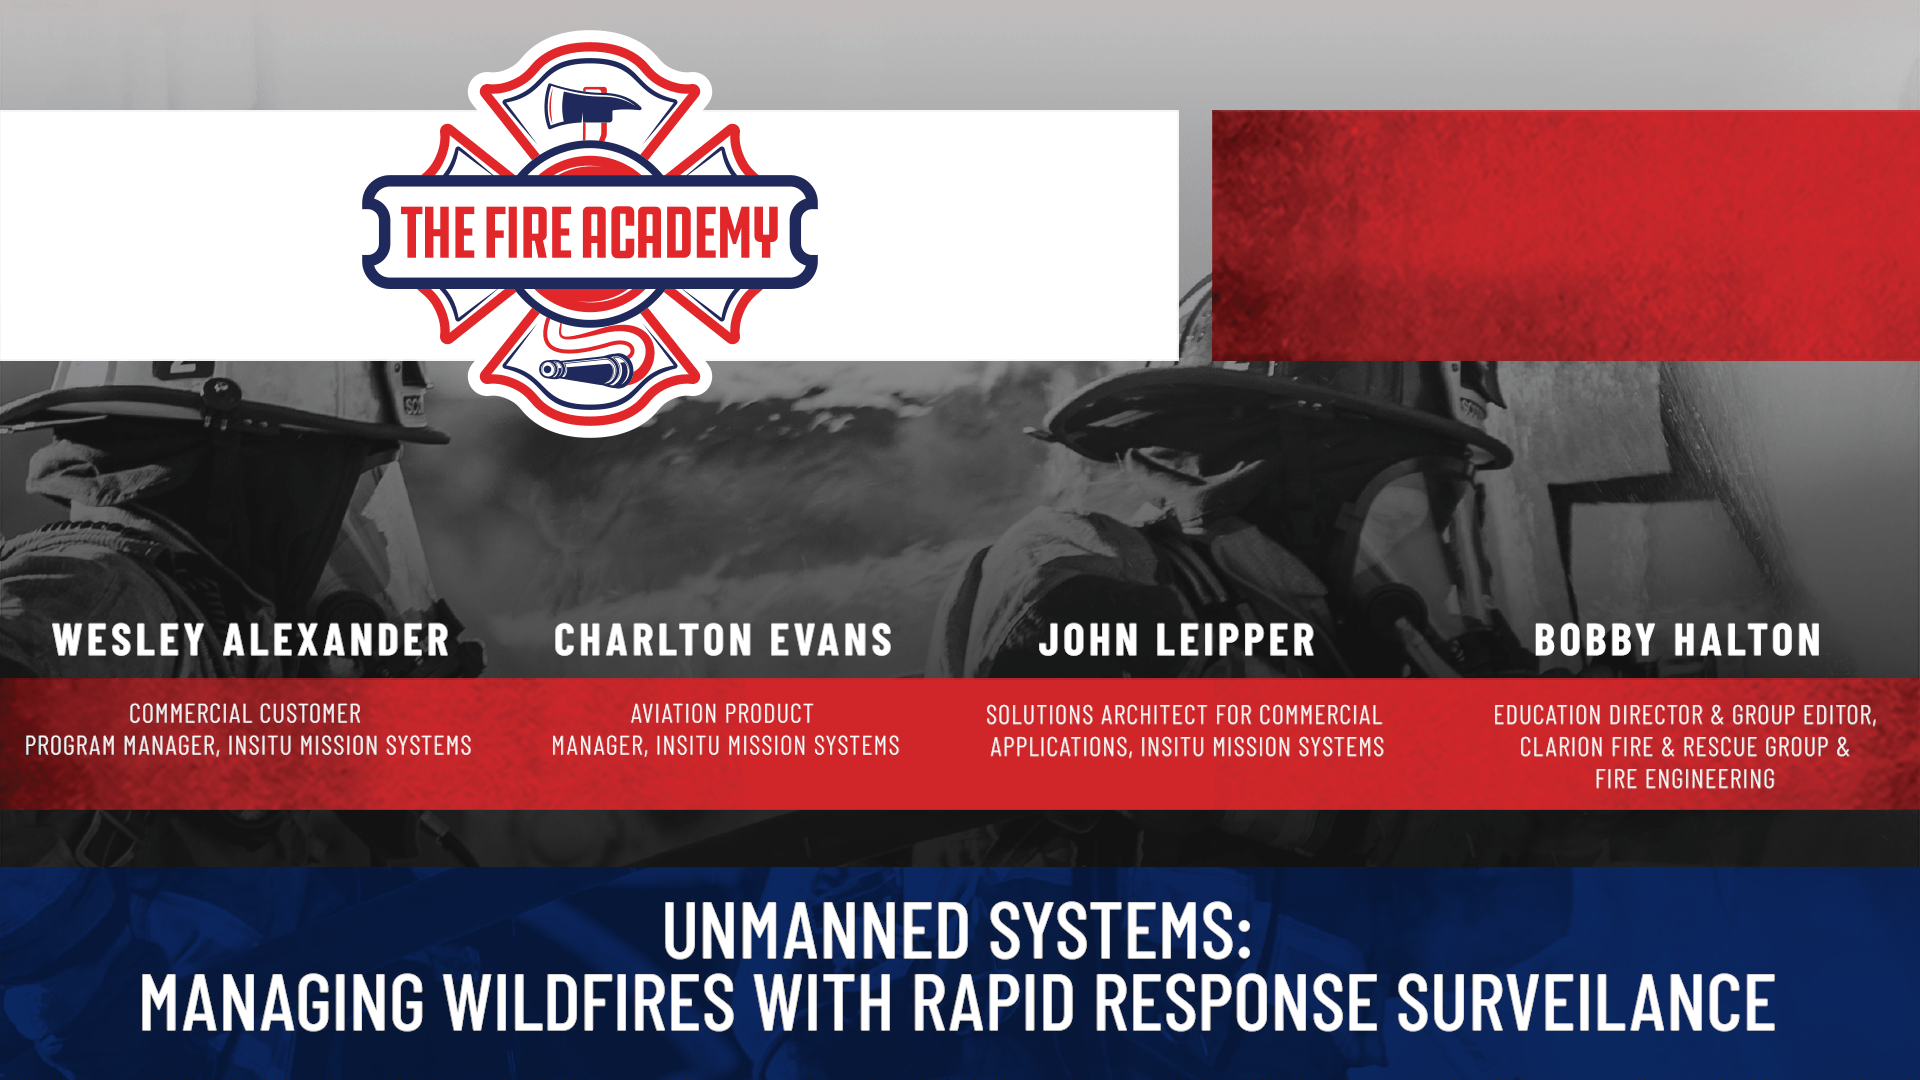 Unmanned Systems: Managing Wildfires with Rapid Response Surveillance